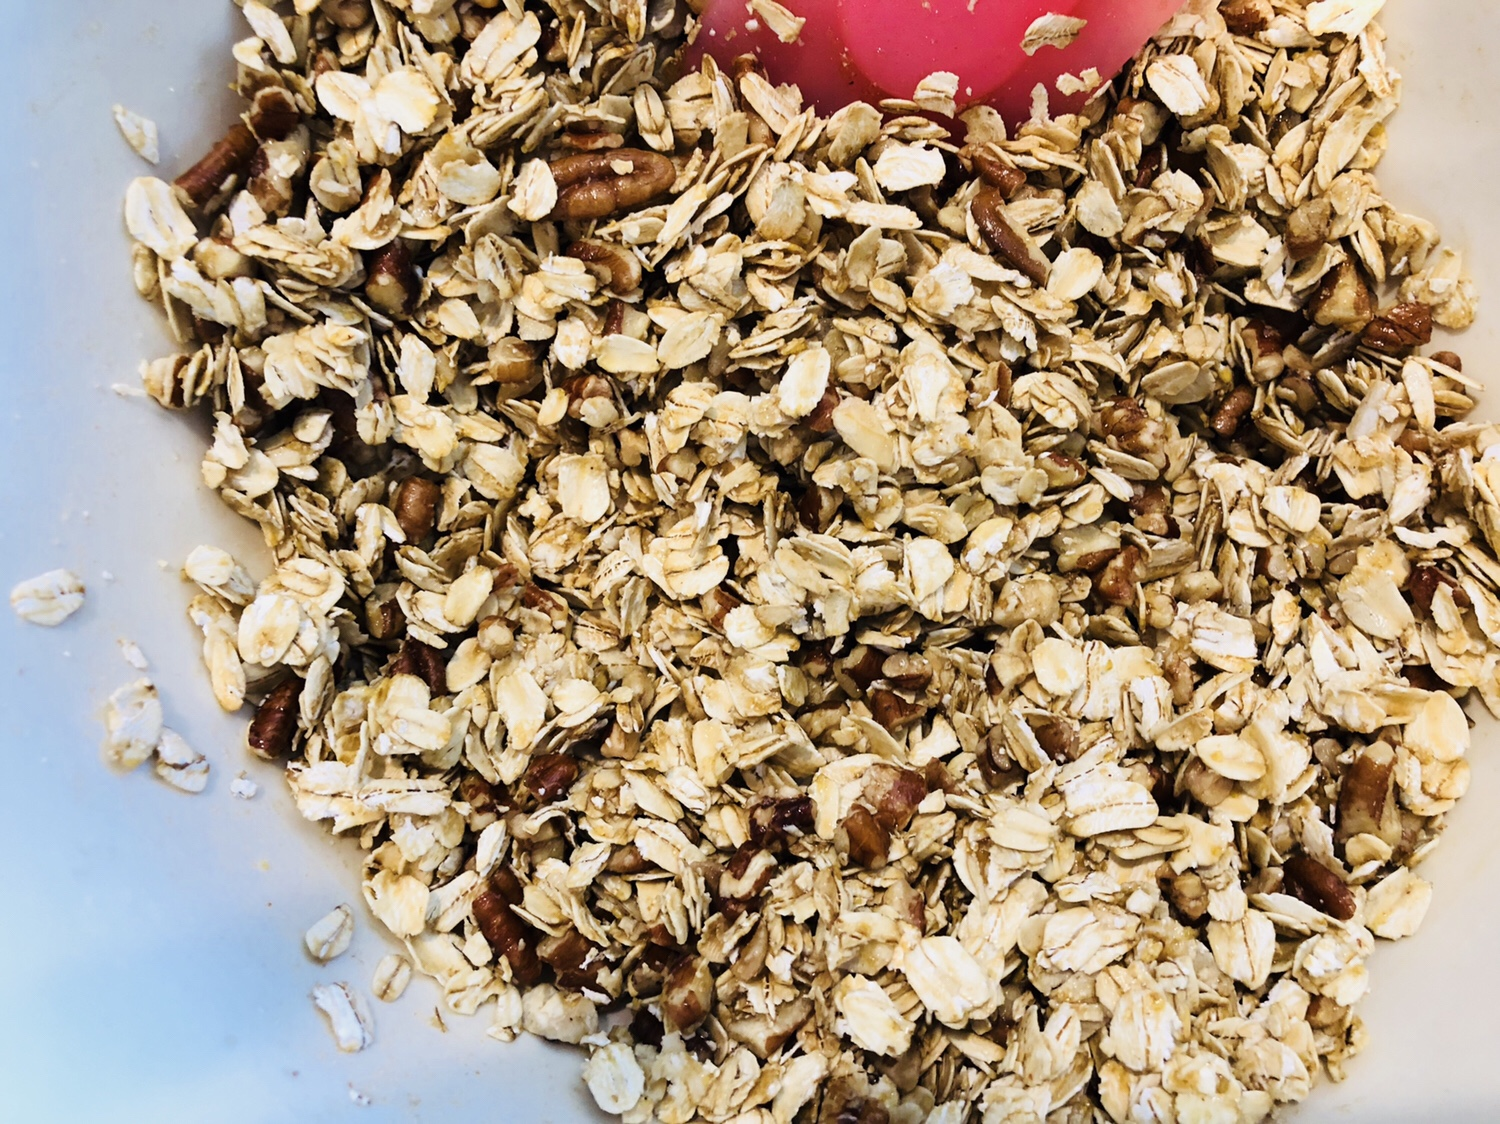 Mix oats and nuts with oil and syrup mixture